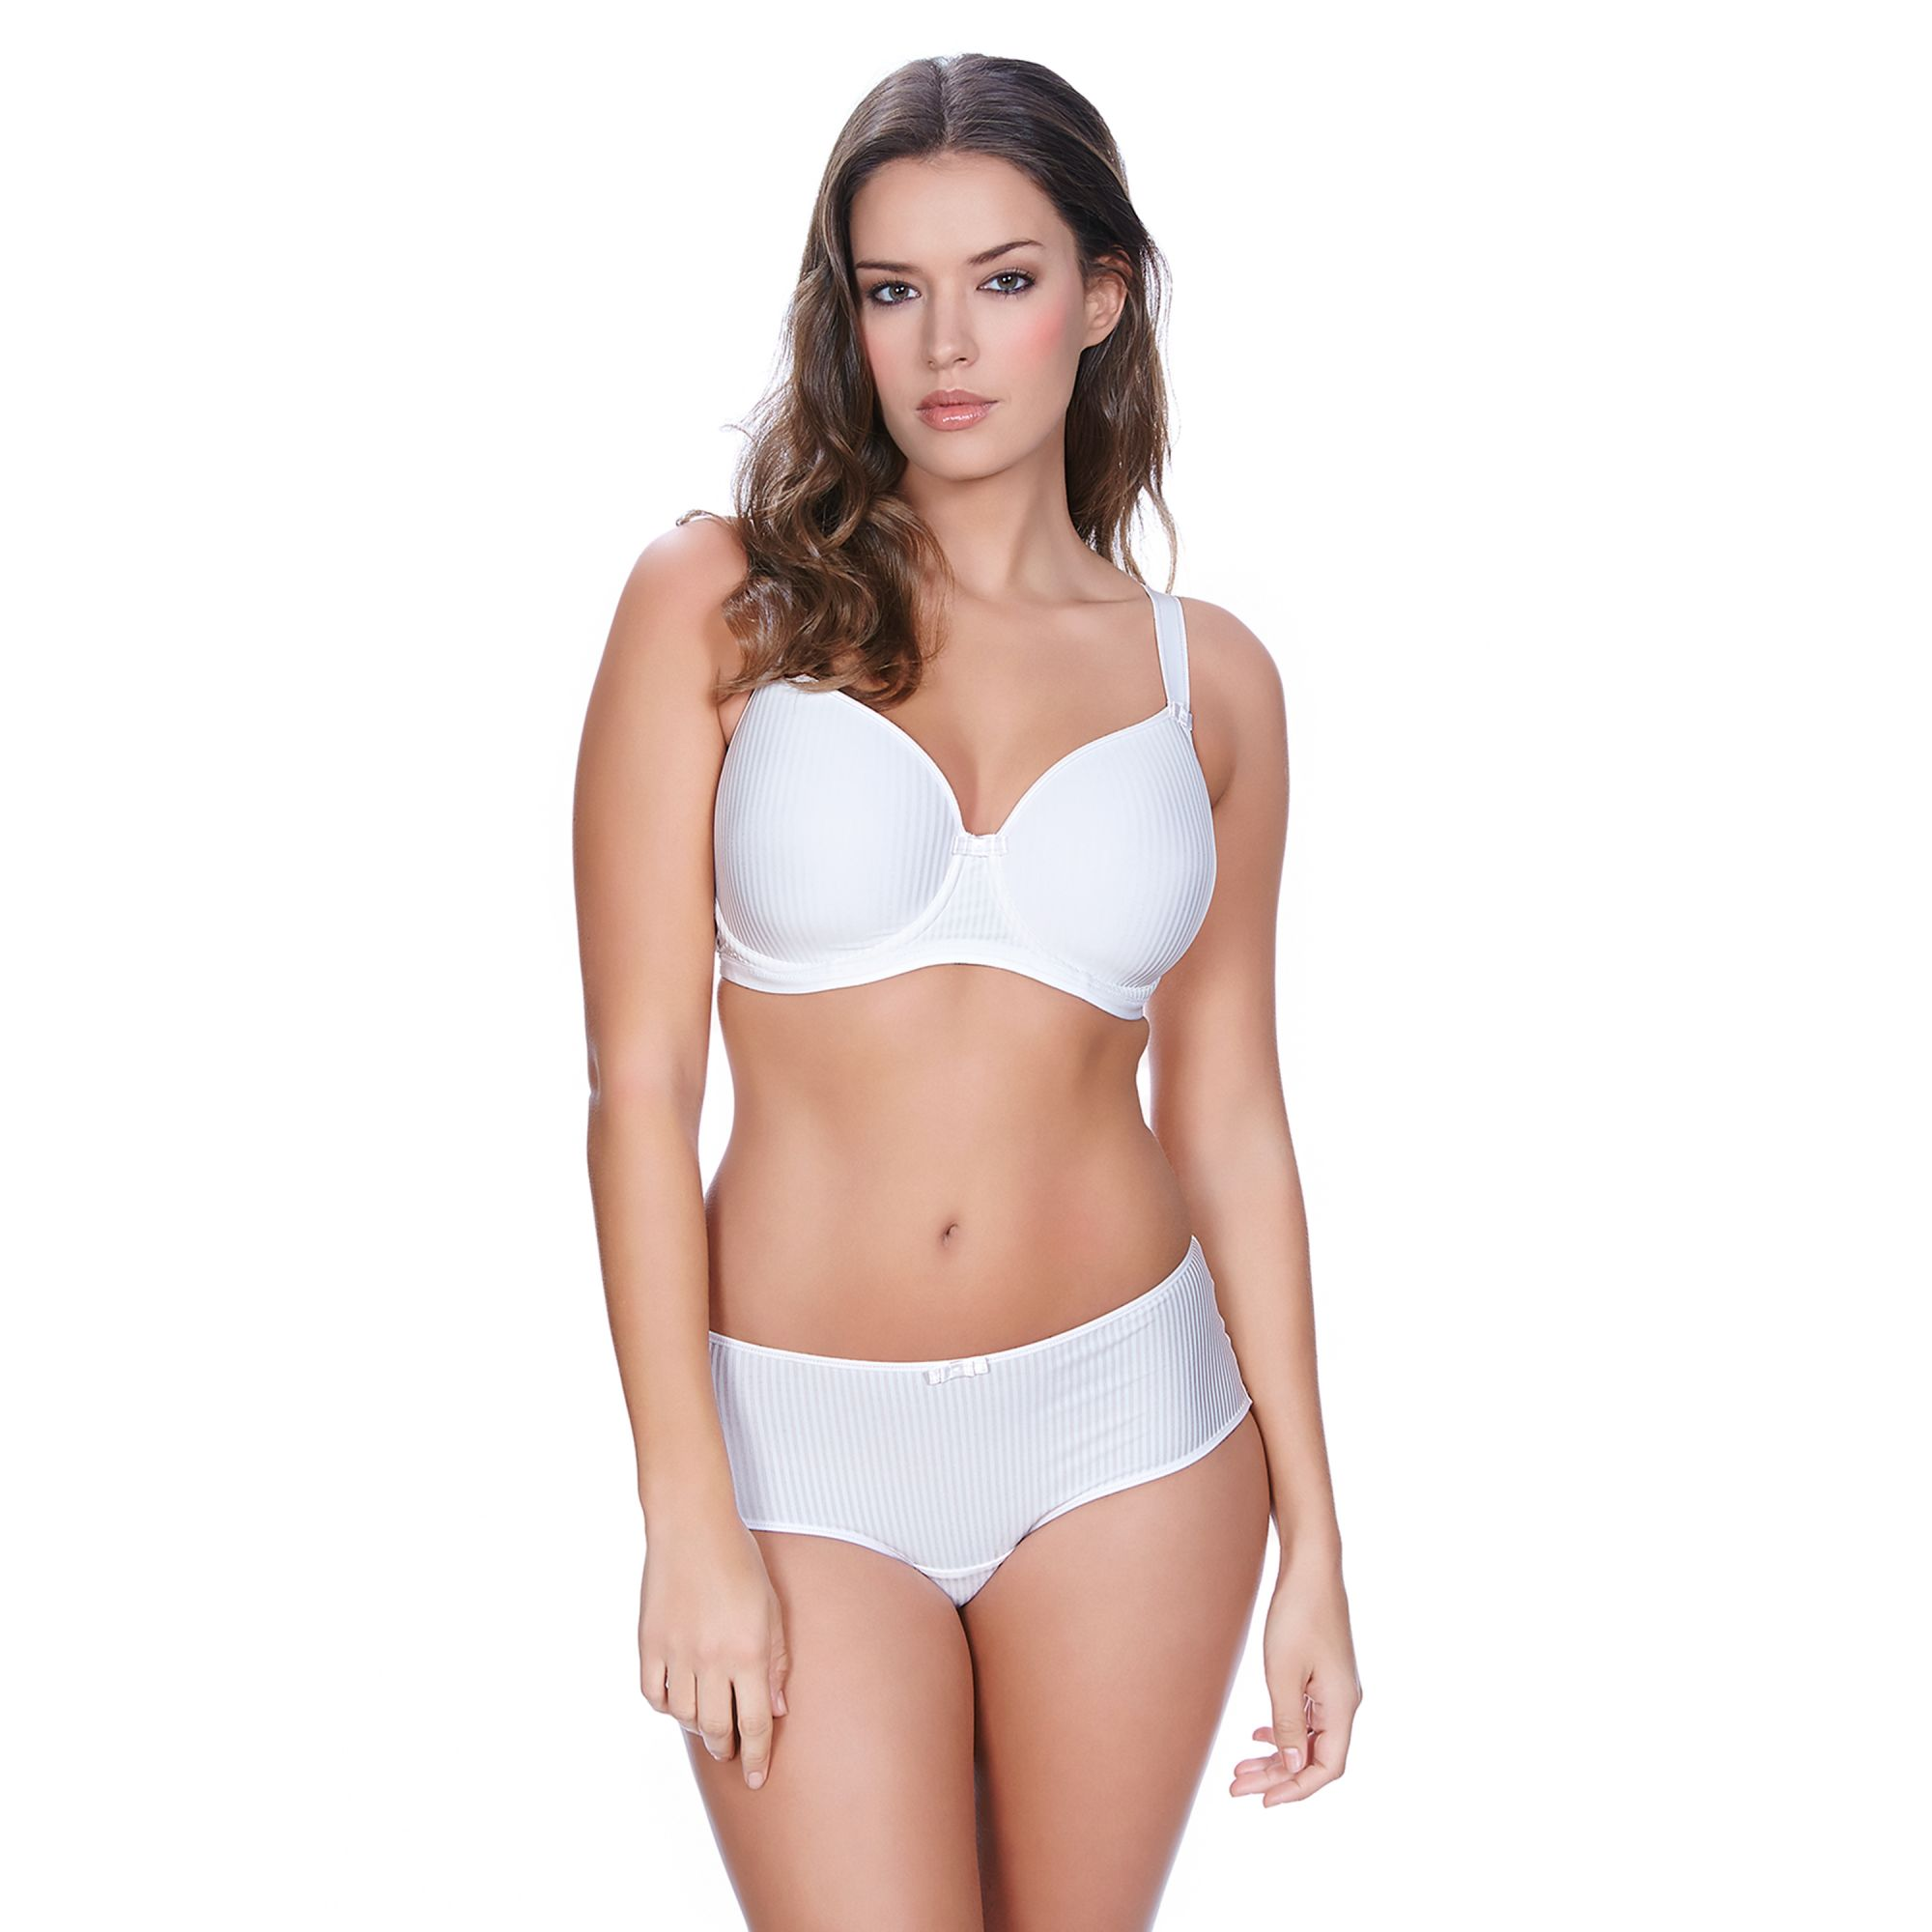 FREYA-LINGERIE-IDOL-WHITE-UW-MOULDED-BALCONY-BRA-AA1050-HIPSTER-SHORT-AA1056-F-TRADE-WEB-AW16